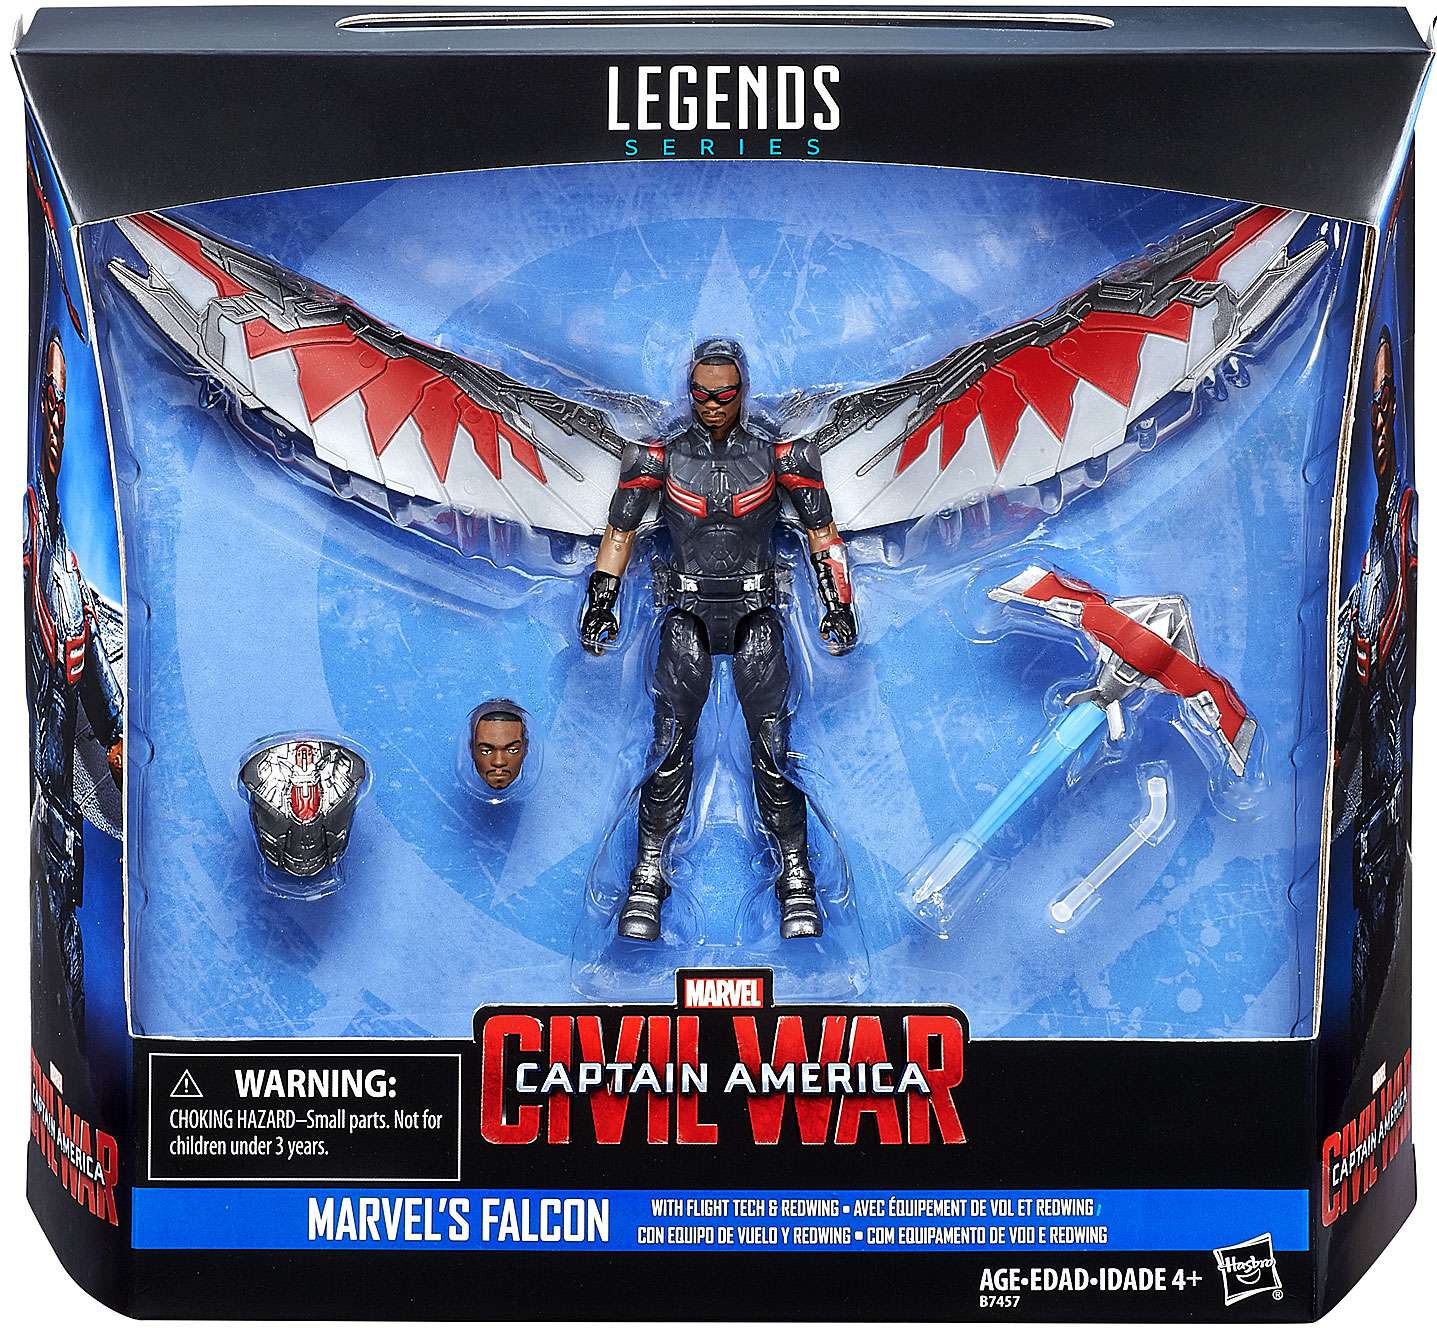 Marvel Legends Series Falcon w/ Flight Tech and Redwing $3.88 @ Walmart.com w/ Free In-Store Pickup